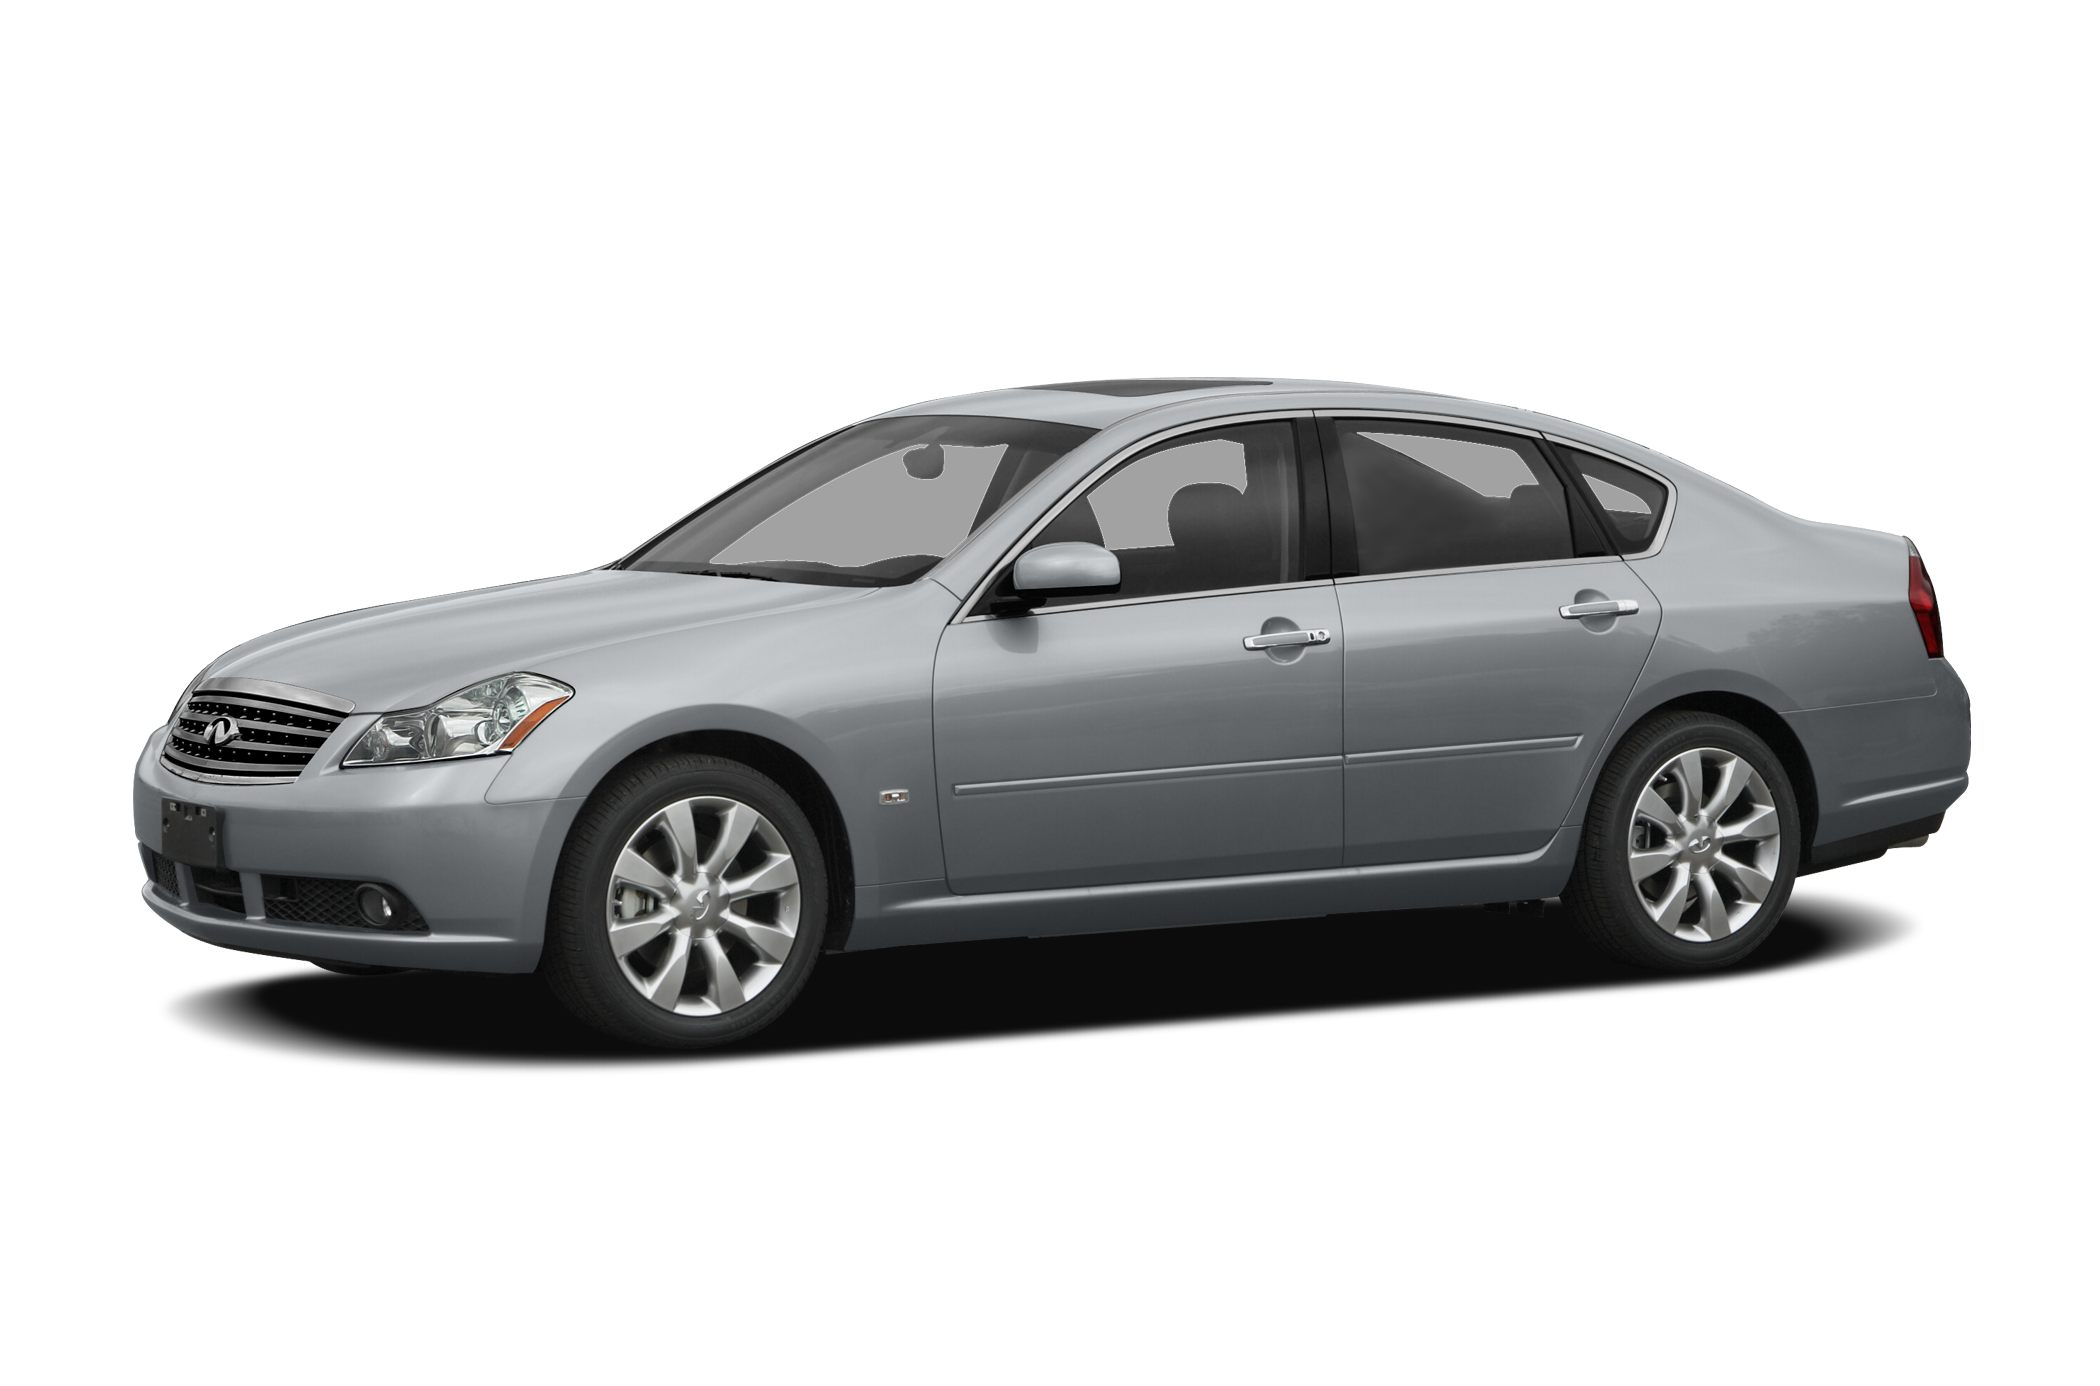 2007 Infiniti M35 X Sedan for sale in Phoenix for $14,995 with 97,486 miles